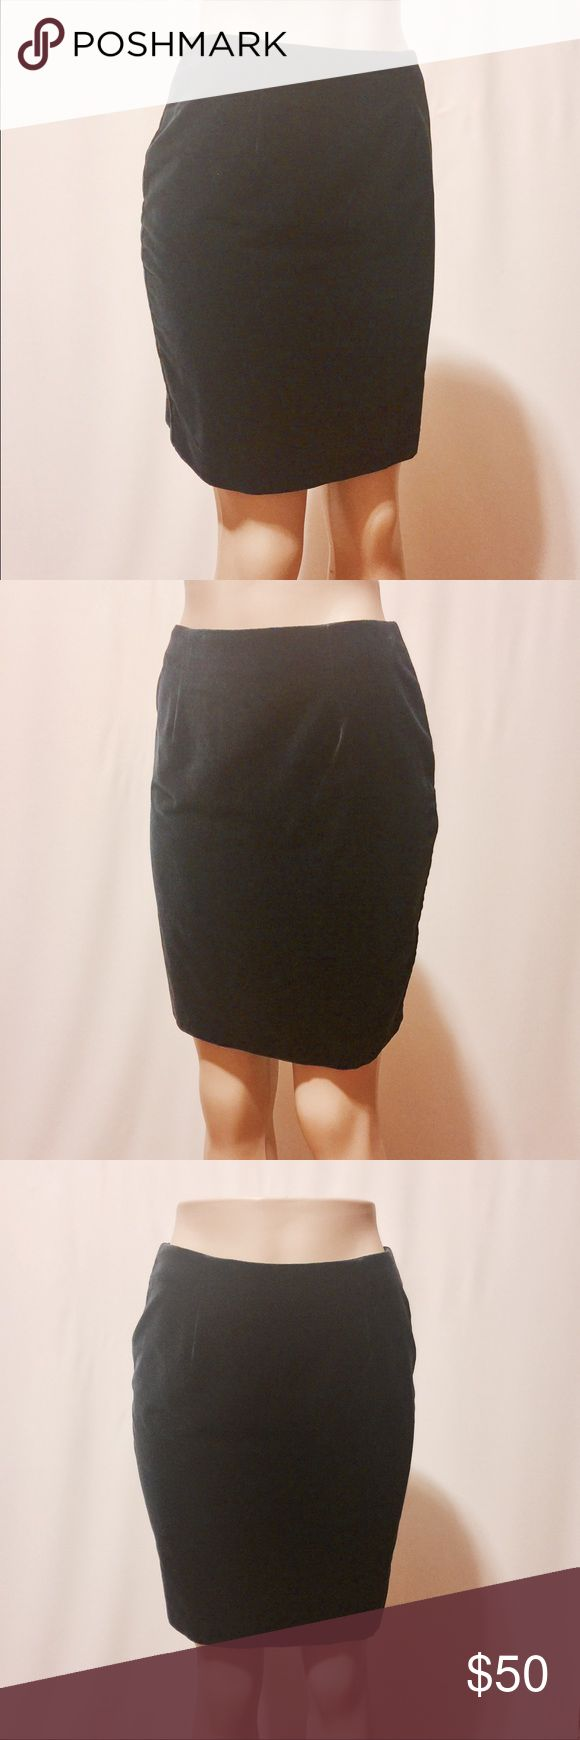 "✨ Hugo Buscati Navy Velvet Pencil Skirt (NWOT) Velvet dreams! Super dark navy velvet, high waisted pencil skirt. No waist, invisible center back zipper closure with back kick pleat. Never worn! Body: 100% Cotton Lining: 100% Acetate Dry Clean Only 26"" Waist 38"" Hips 38"" Sweep 18 1/2"" Overall length Hugo Buscati Skirts Pencil"